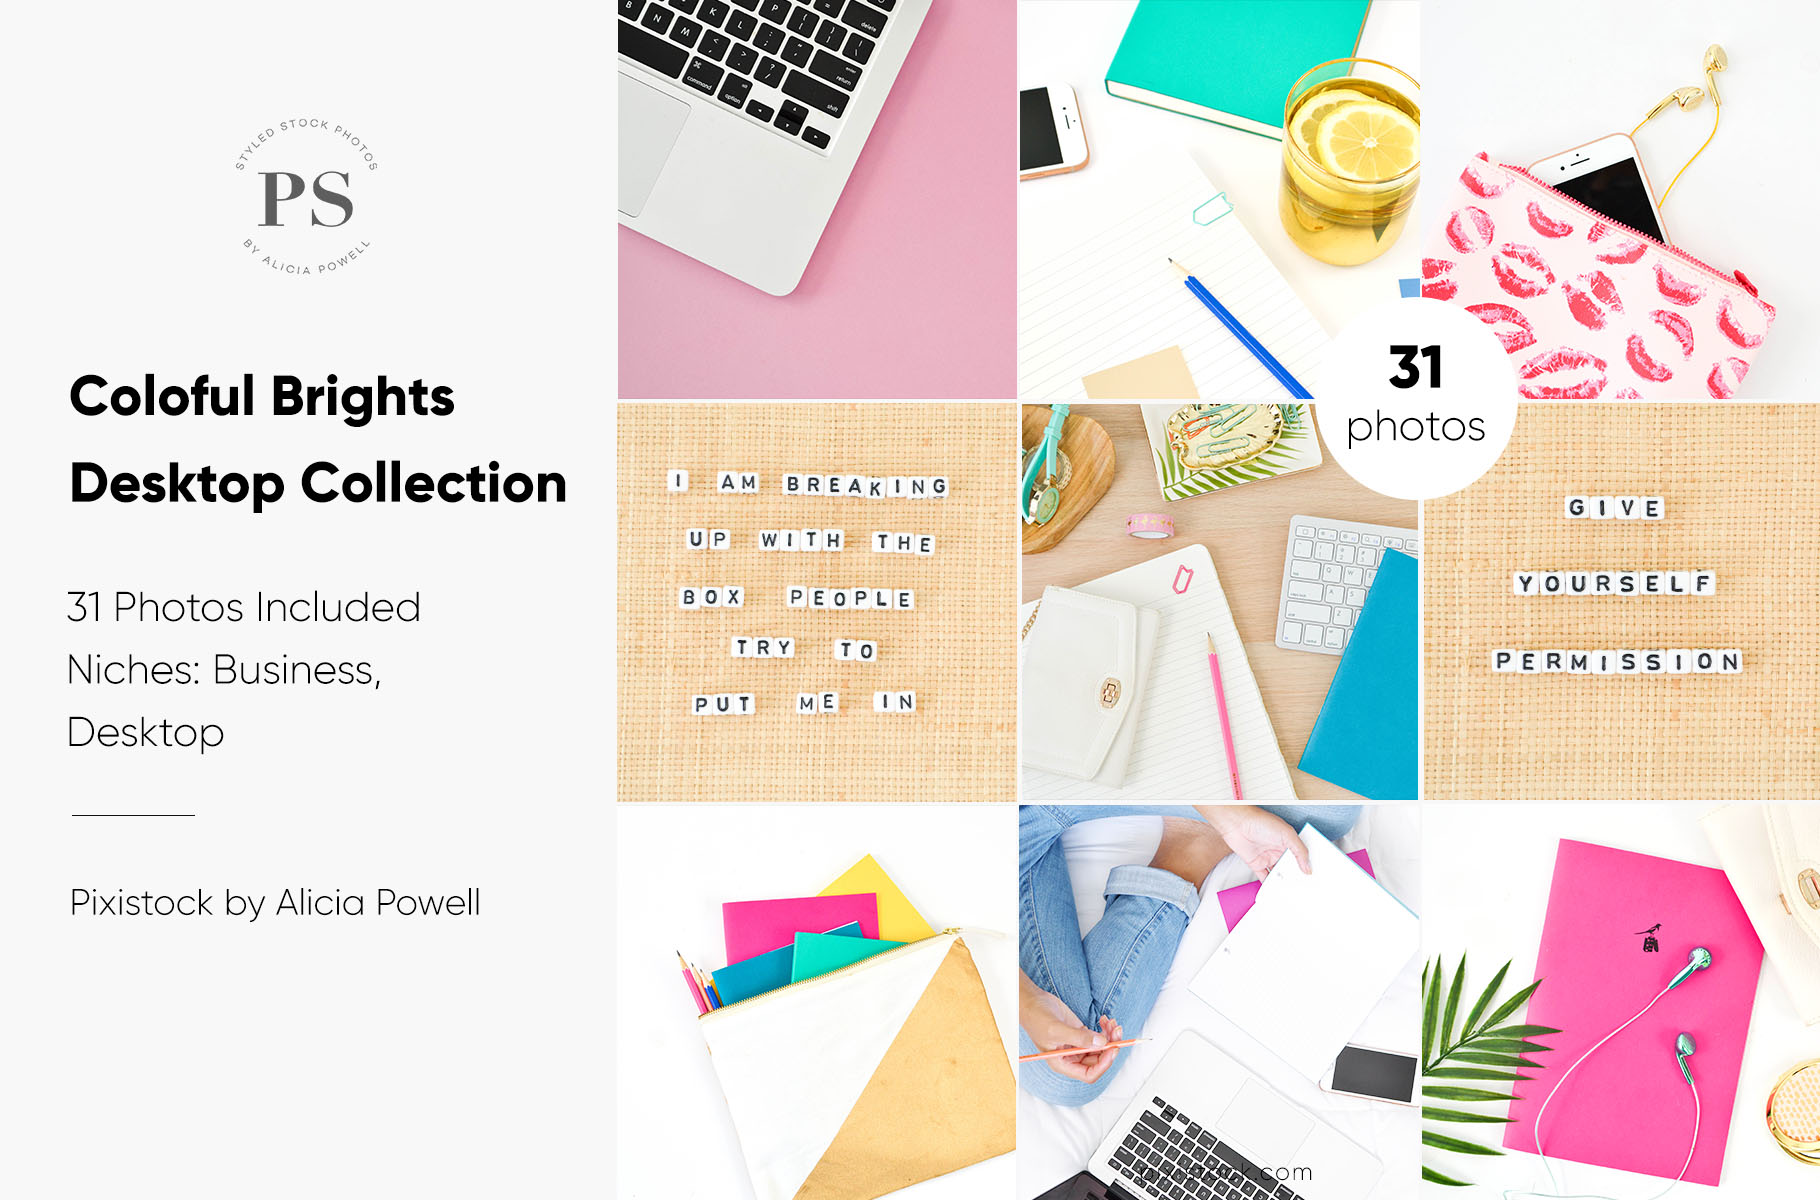 Colorful Brights Desktop Collection